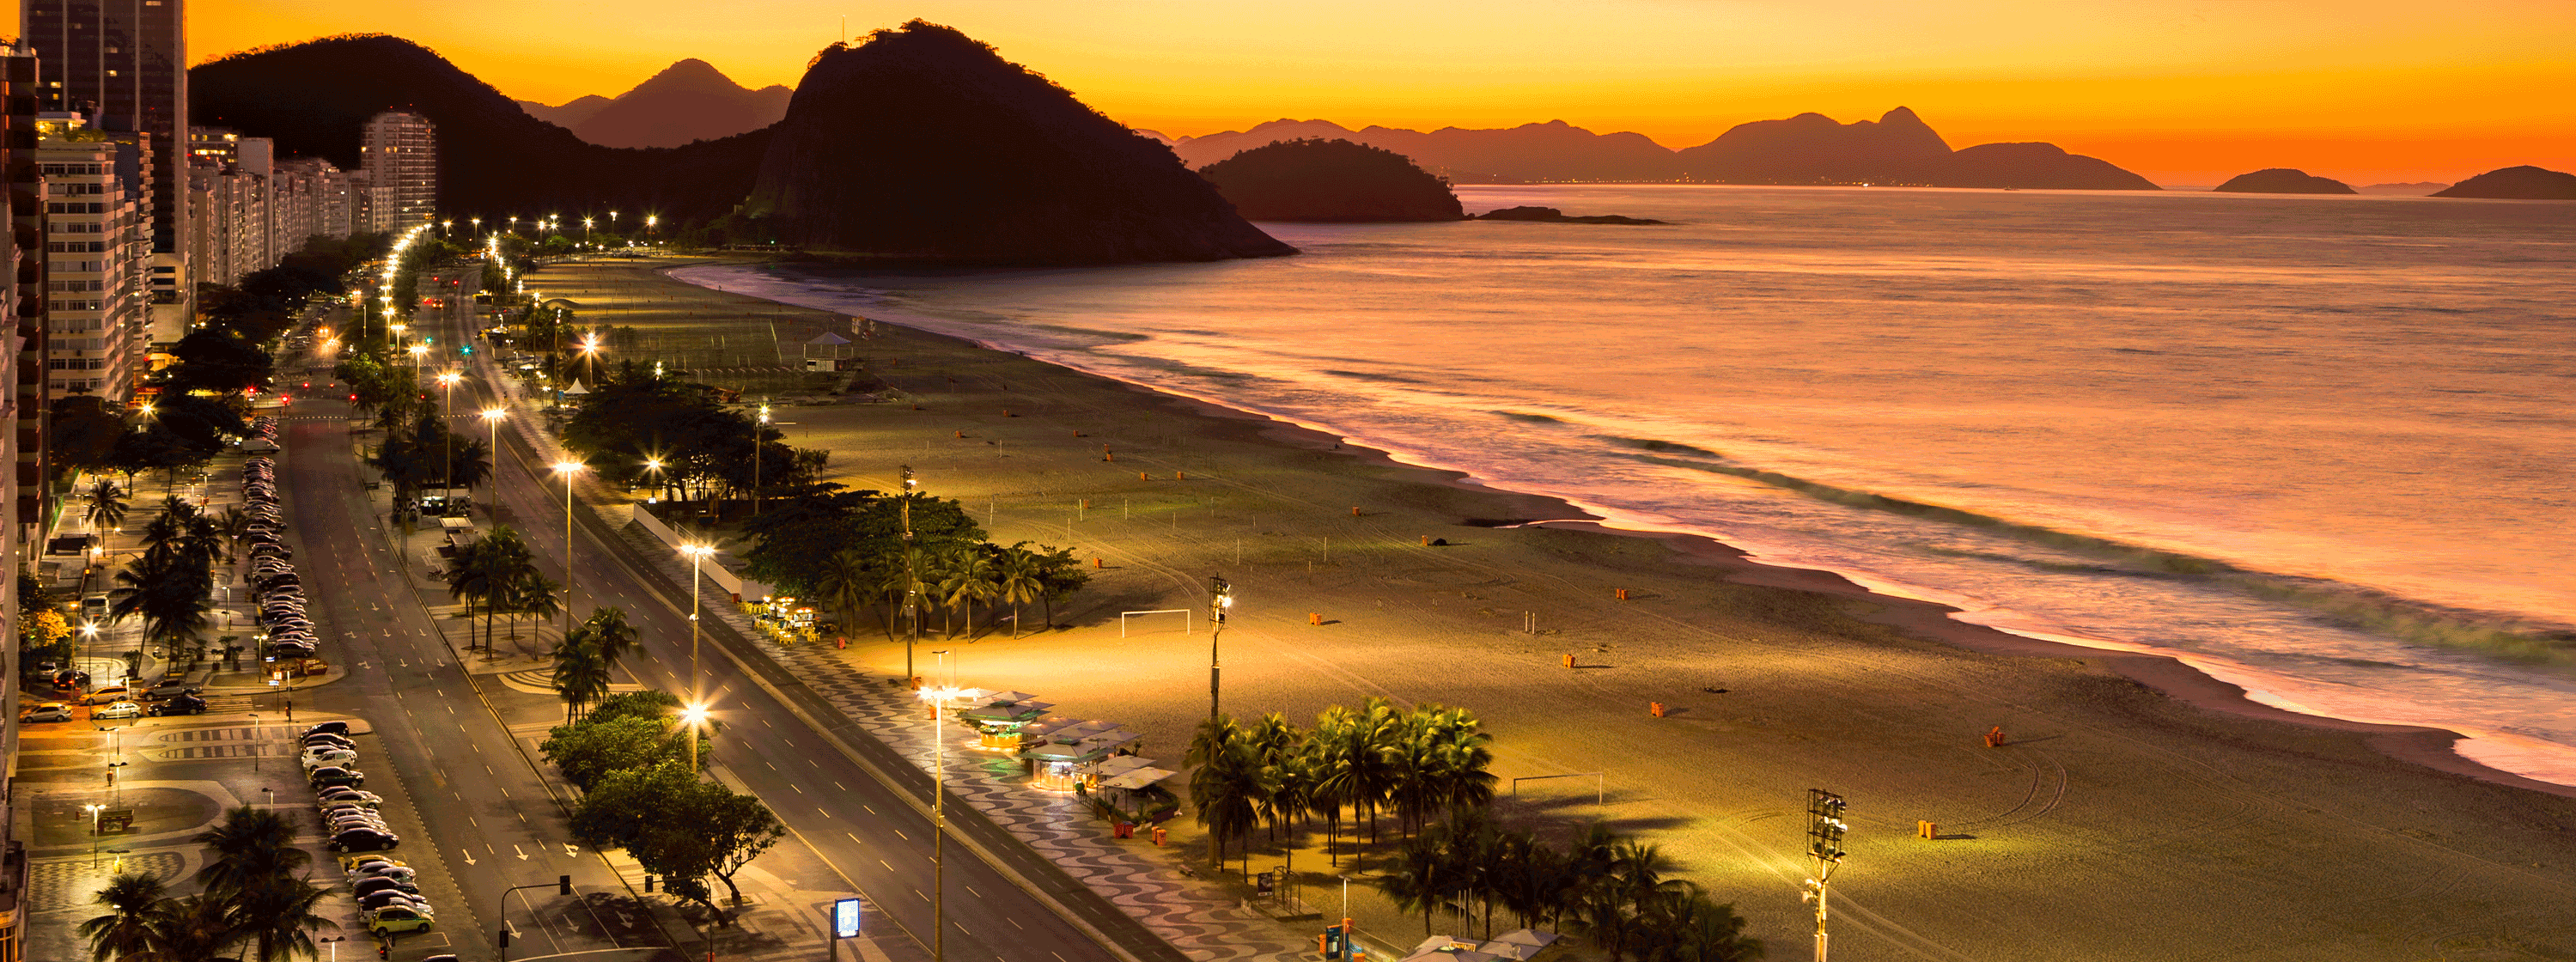 /resource/Images/southamerica/brazil/headerimage/Copacabana-Beach-at-dawn-in-Rio-de-Janeiro-Brazil.png